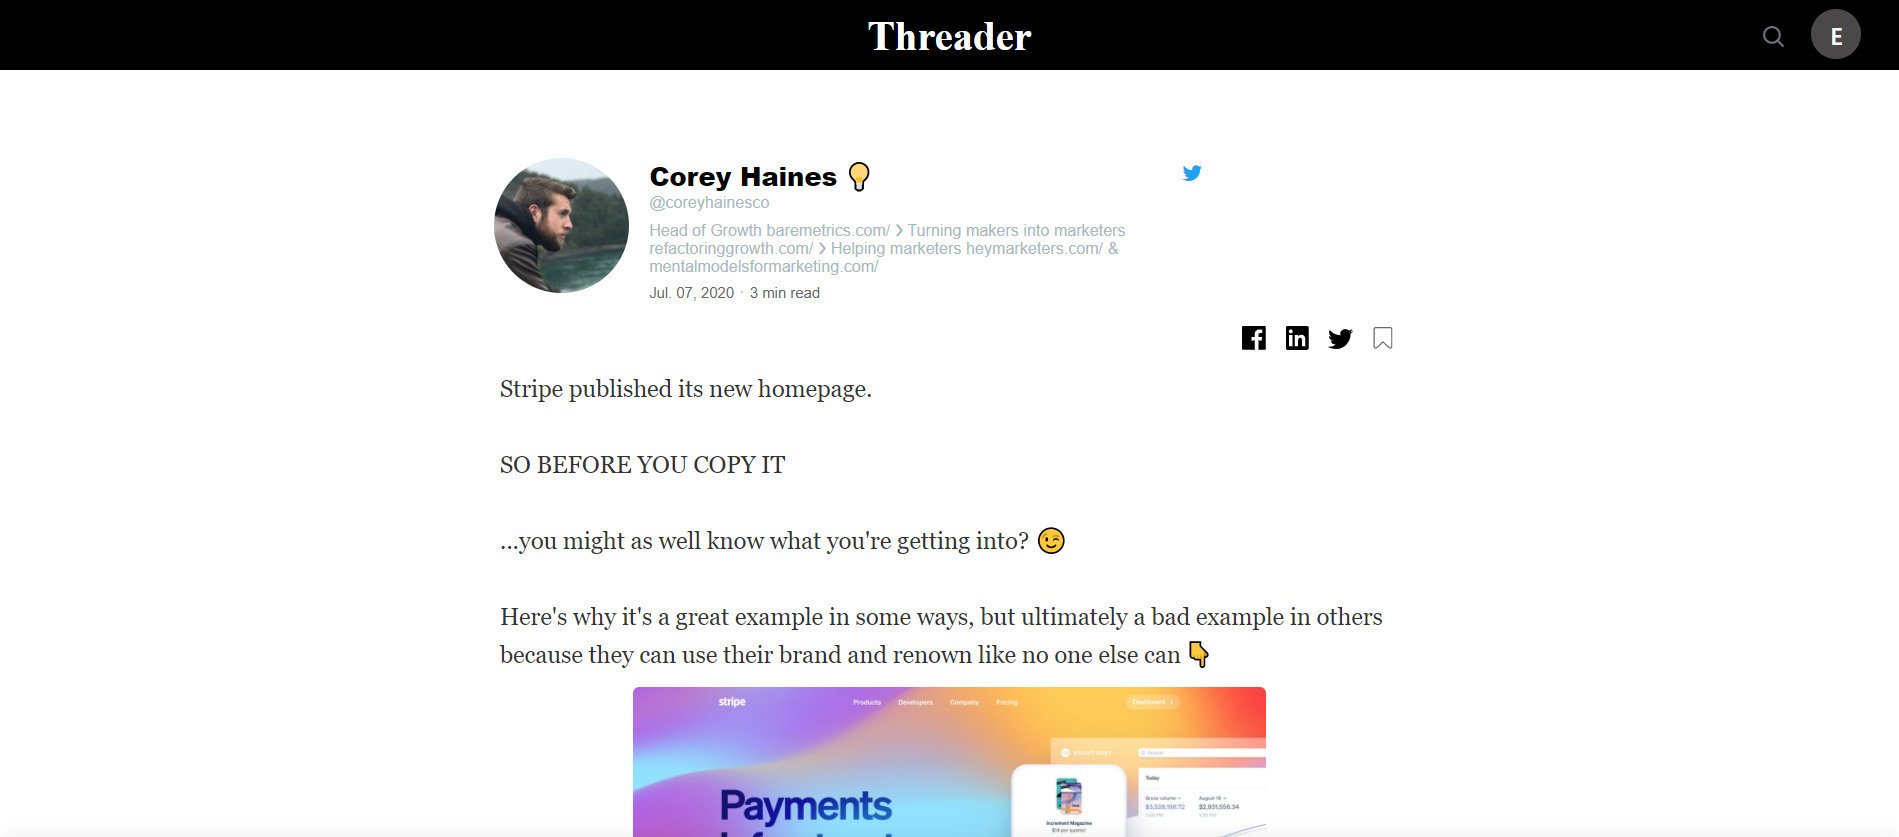 A twitter thread saved into the the threader app